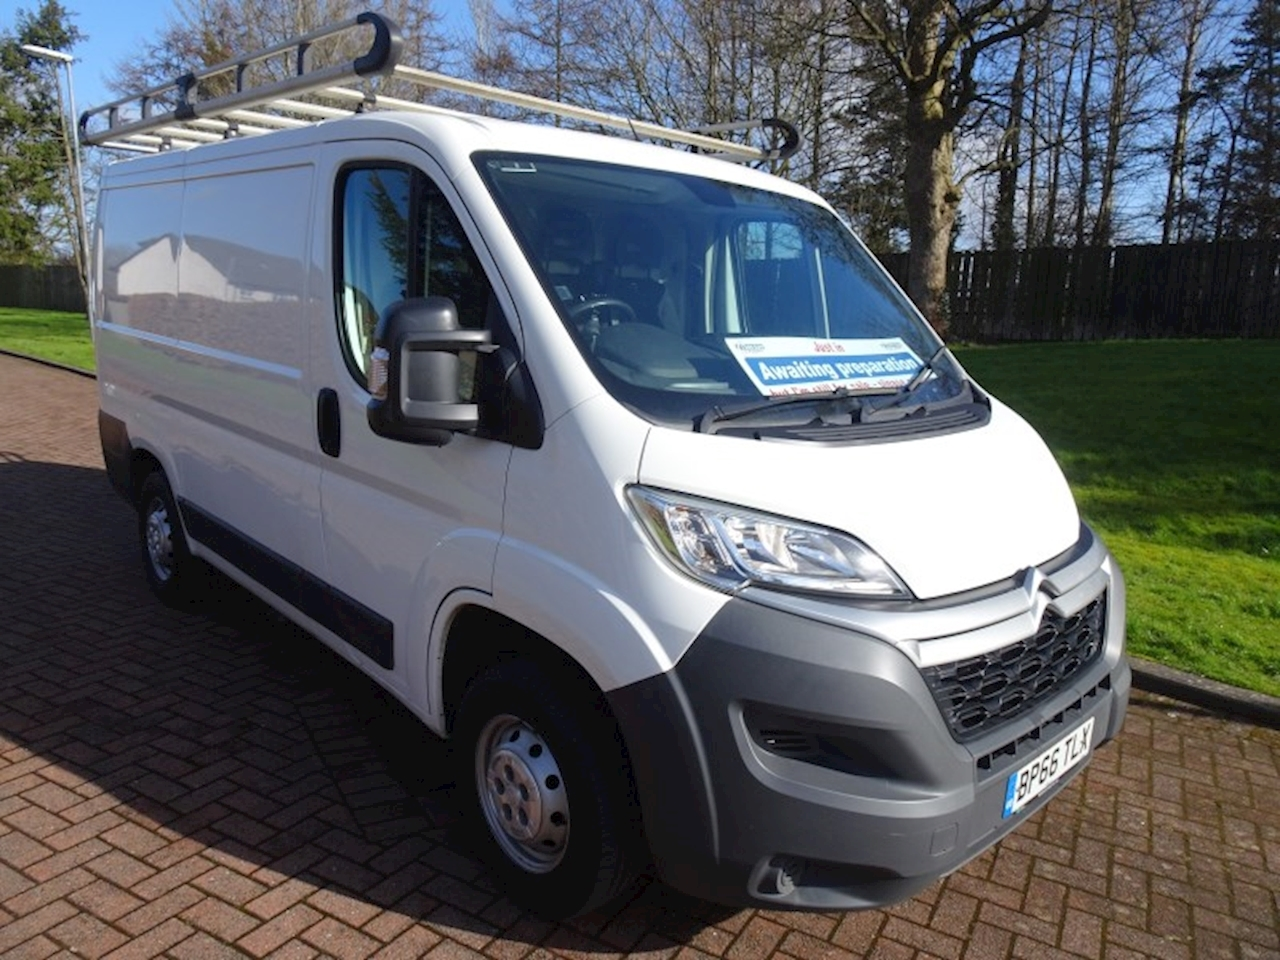 Citroen Relay 30 L1h1 Bluehdi Panel Van 2.0 Manual Diesel